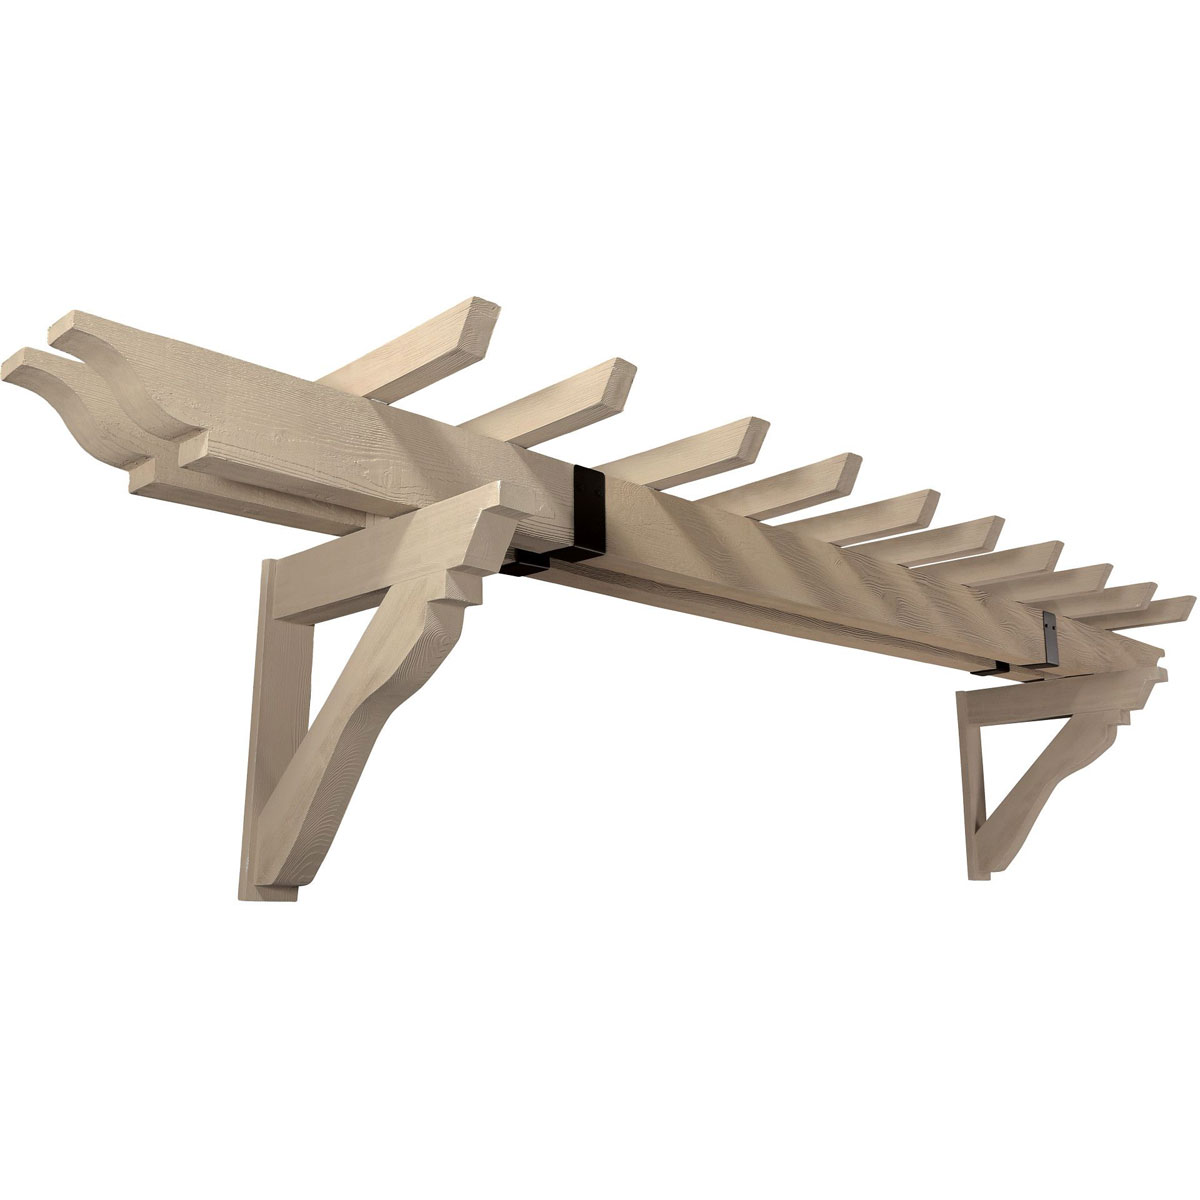 Fypon ltd trls18987 timber trellis system fits 16 39 18 39 ga for Fypon wood beams